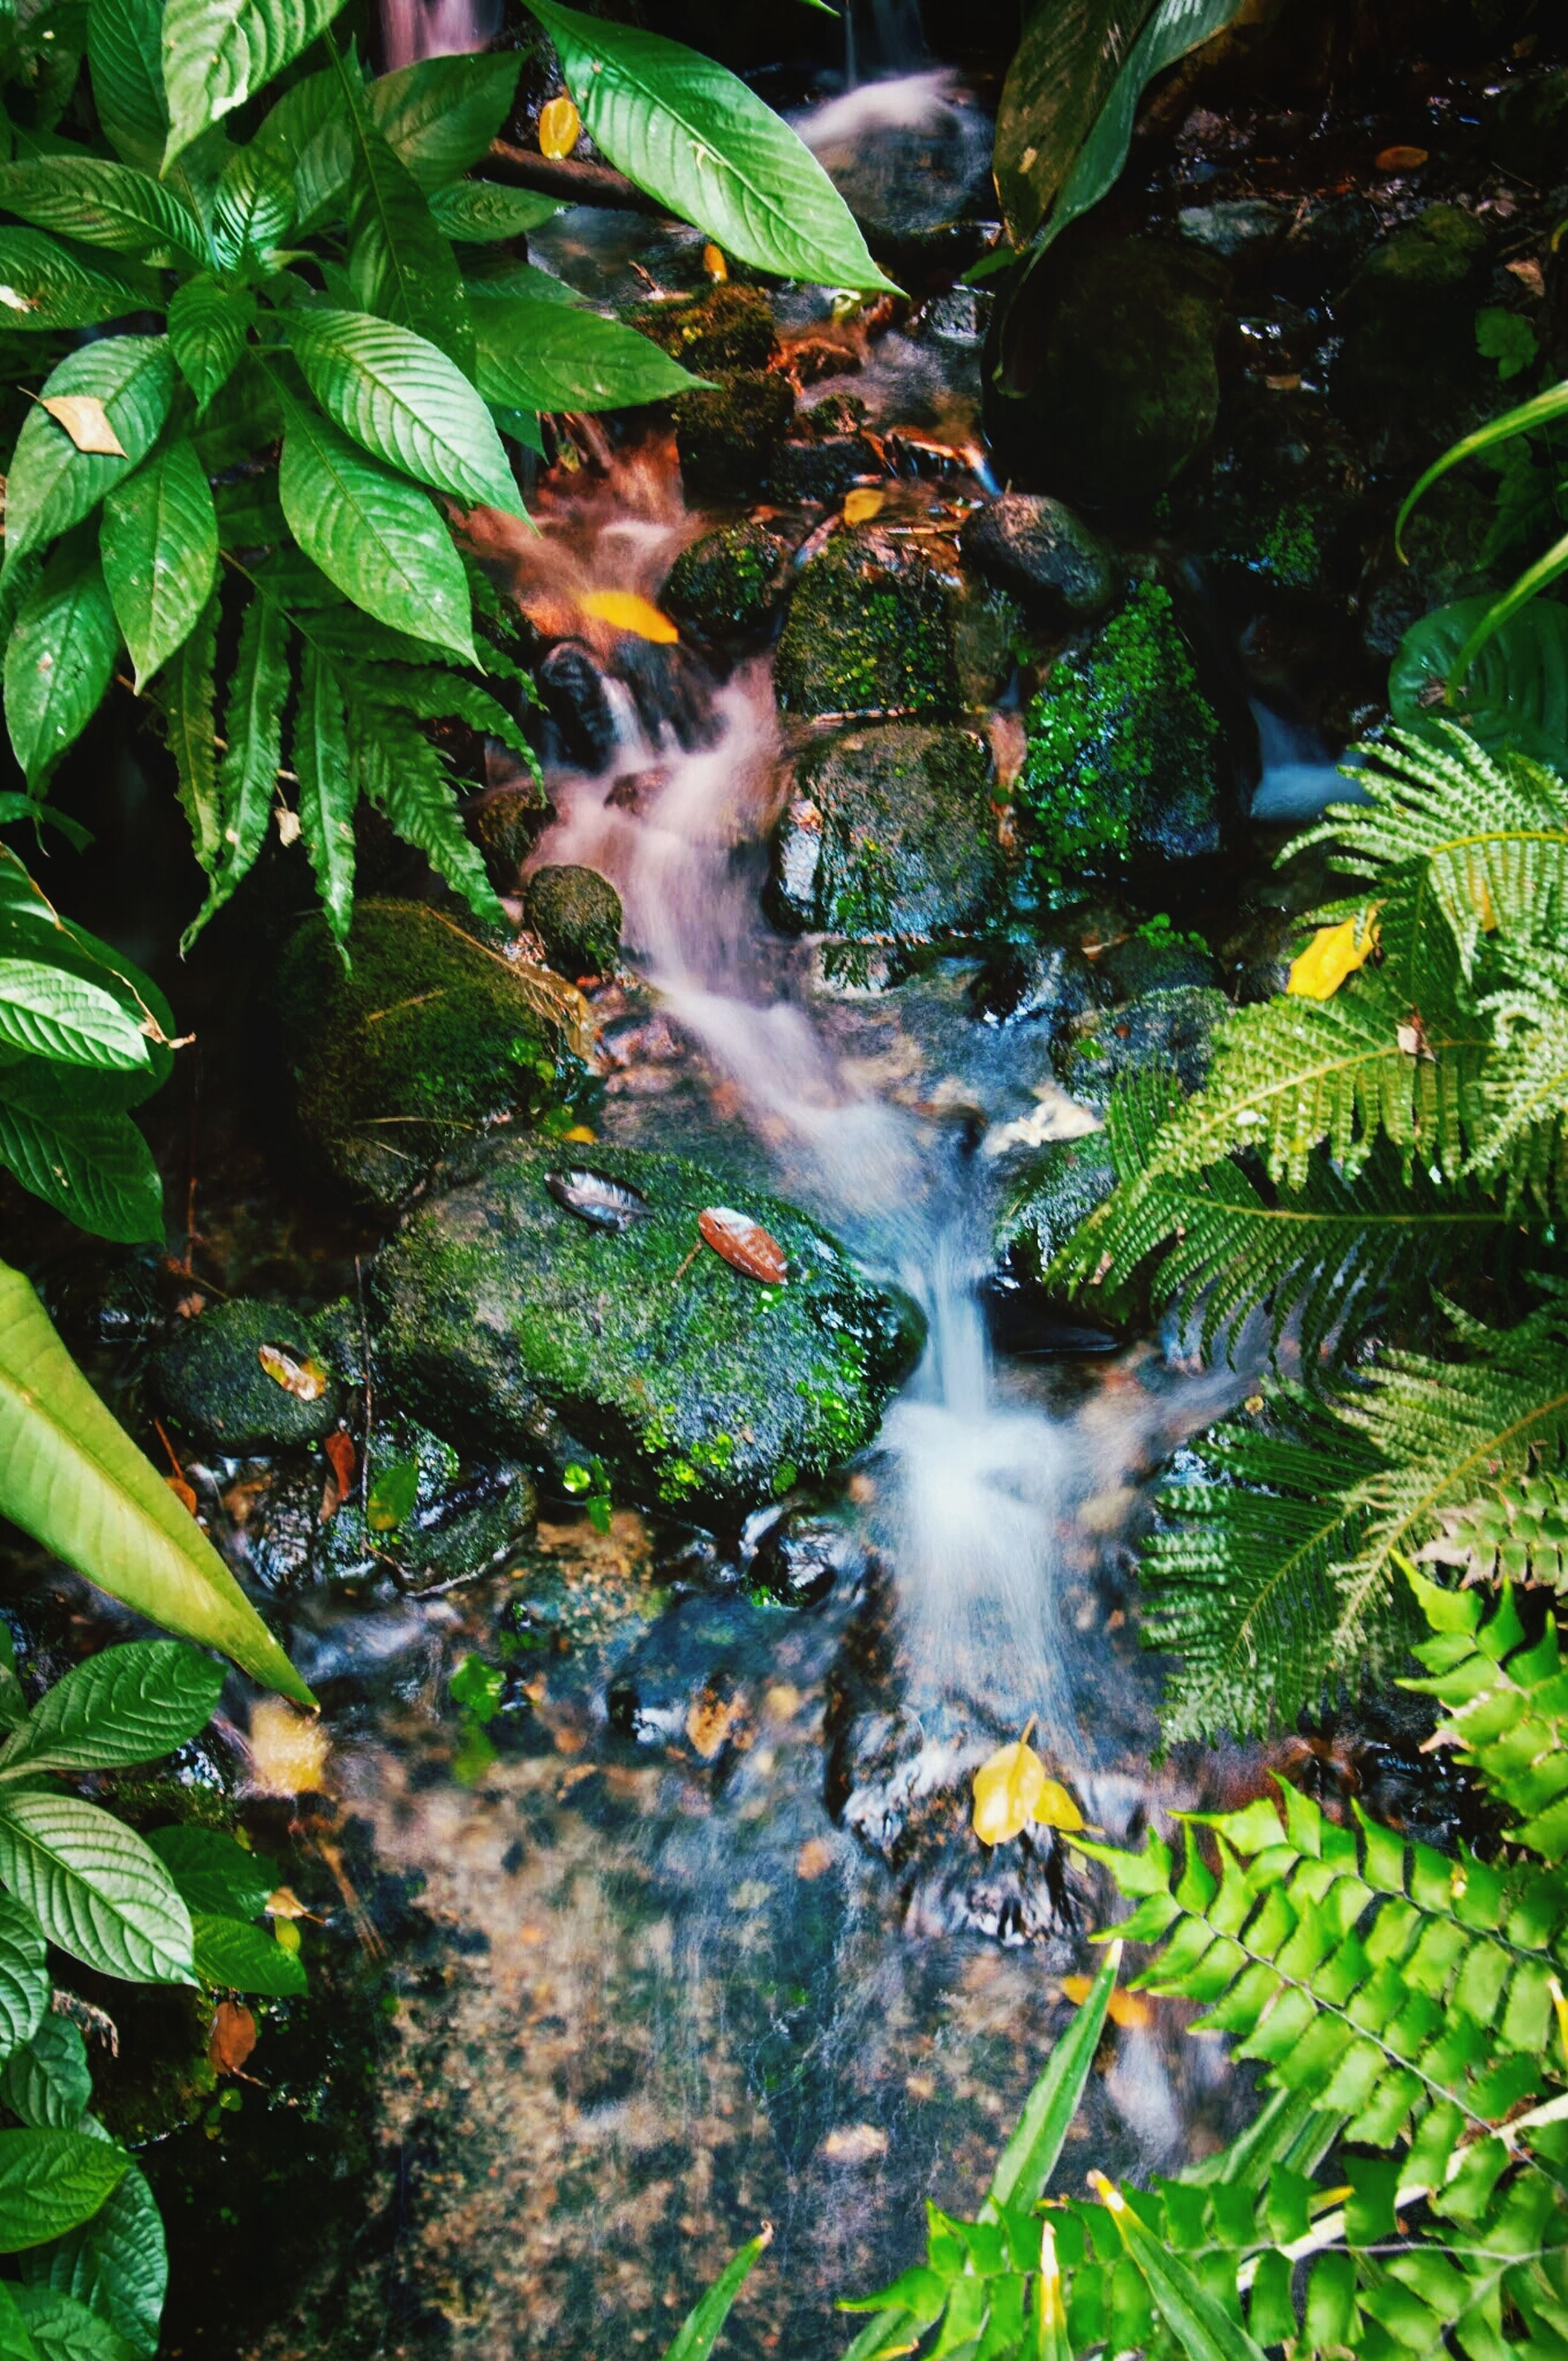 leaf, growth, green color, plant, nature, beauty in nature, forest, water, tree, tranquility, close-up, outdoors, sunlight, scenics, day, no people, leaves, fern, lush foliage, moss